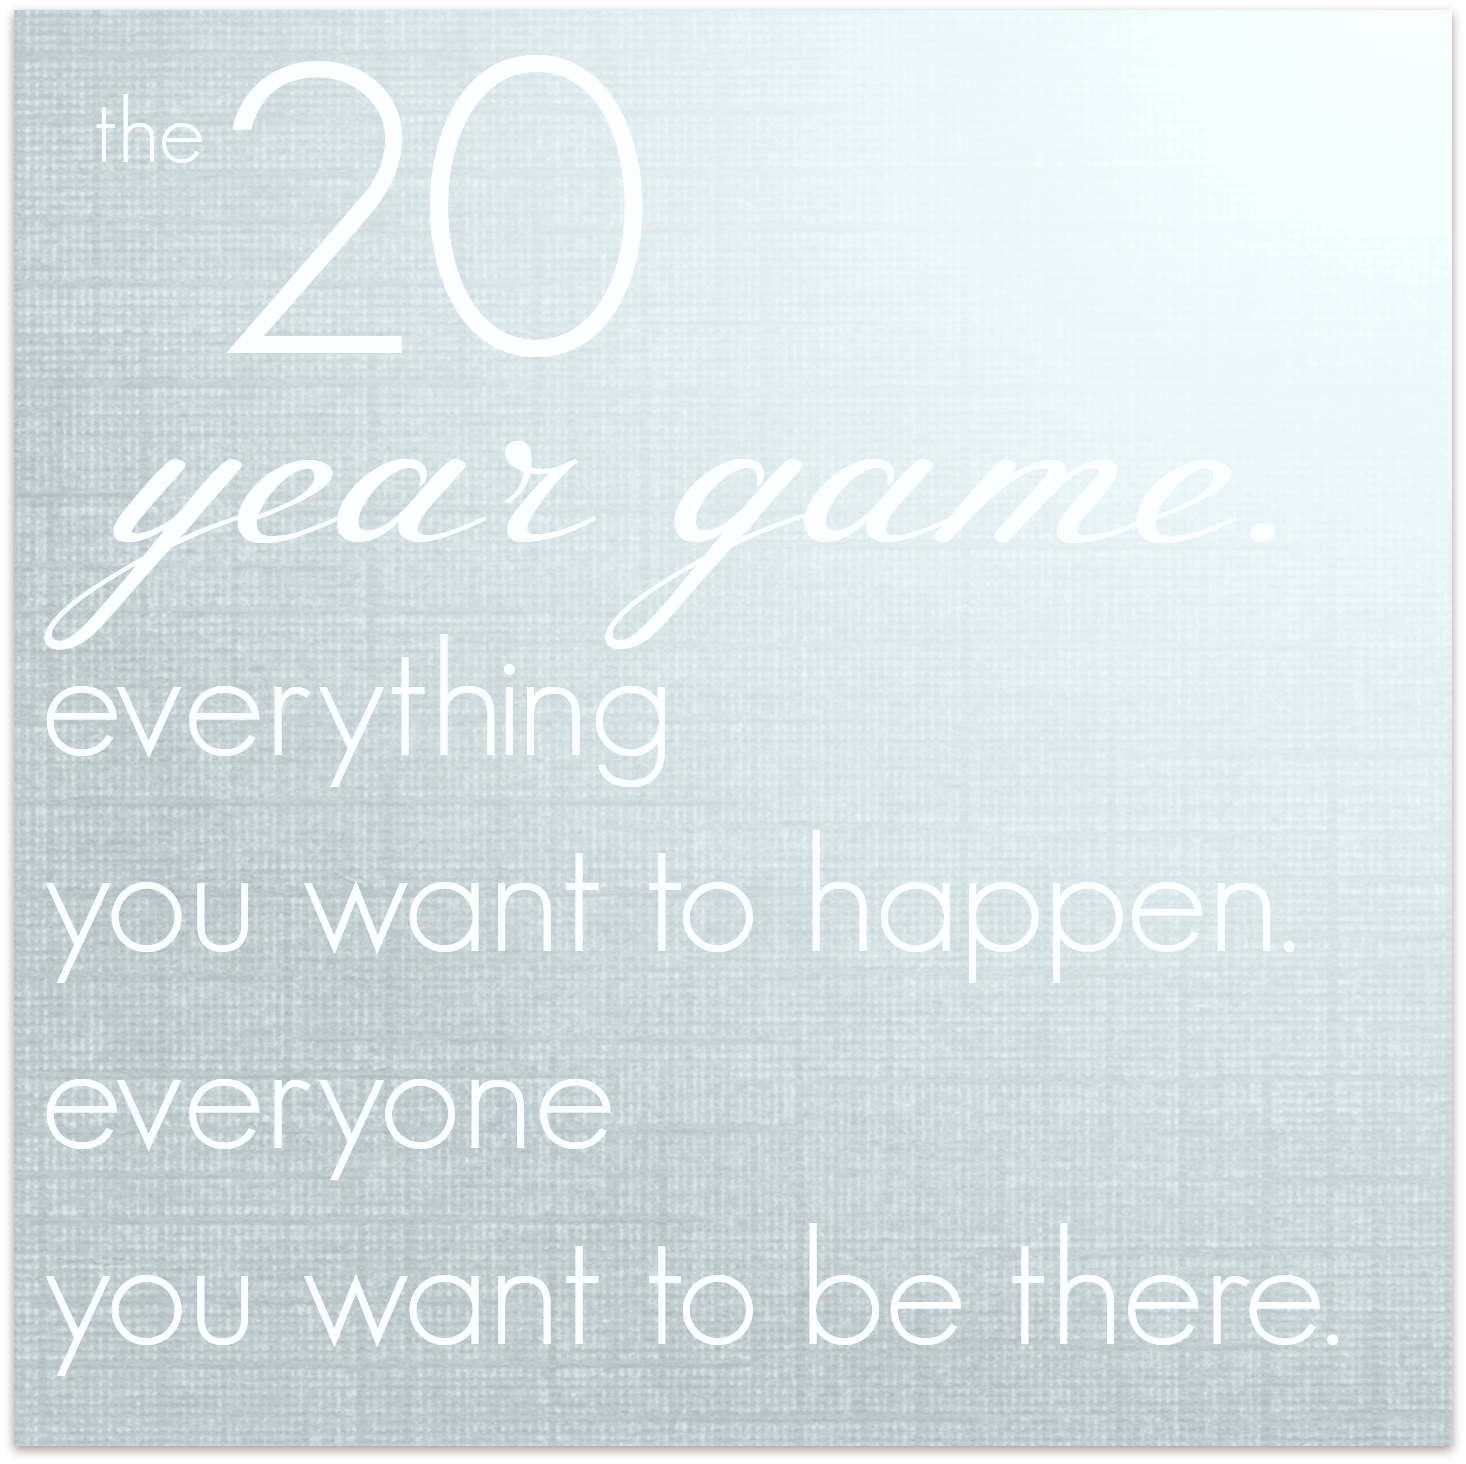 20yeargame1.png